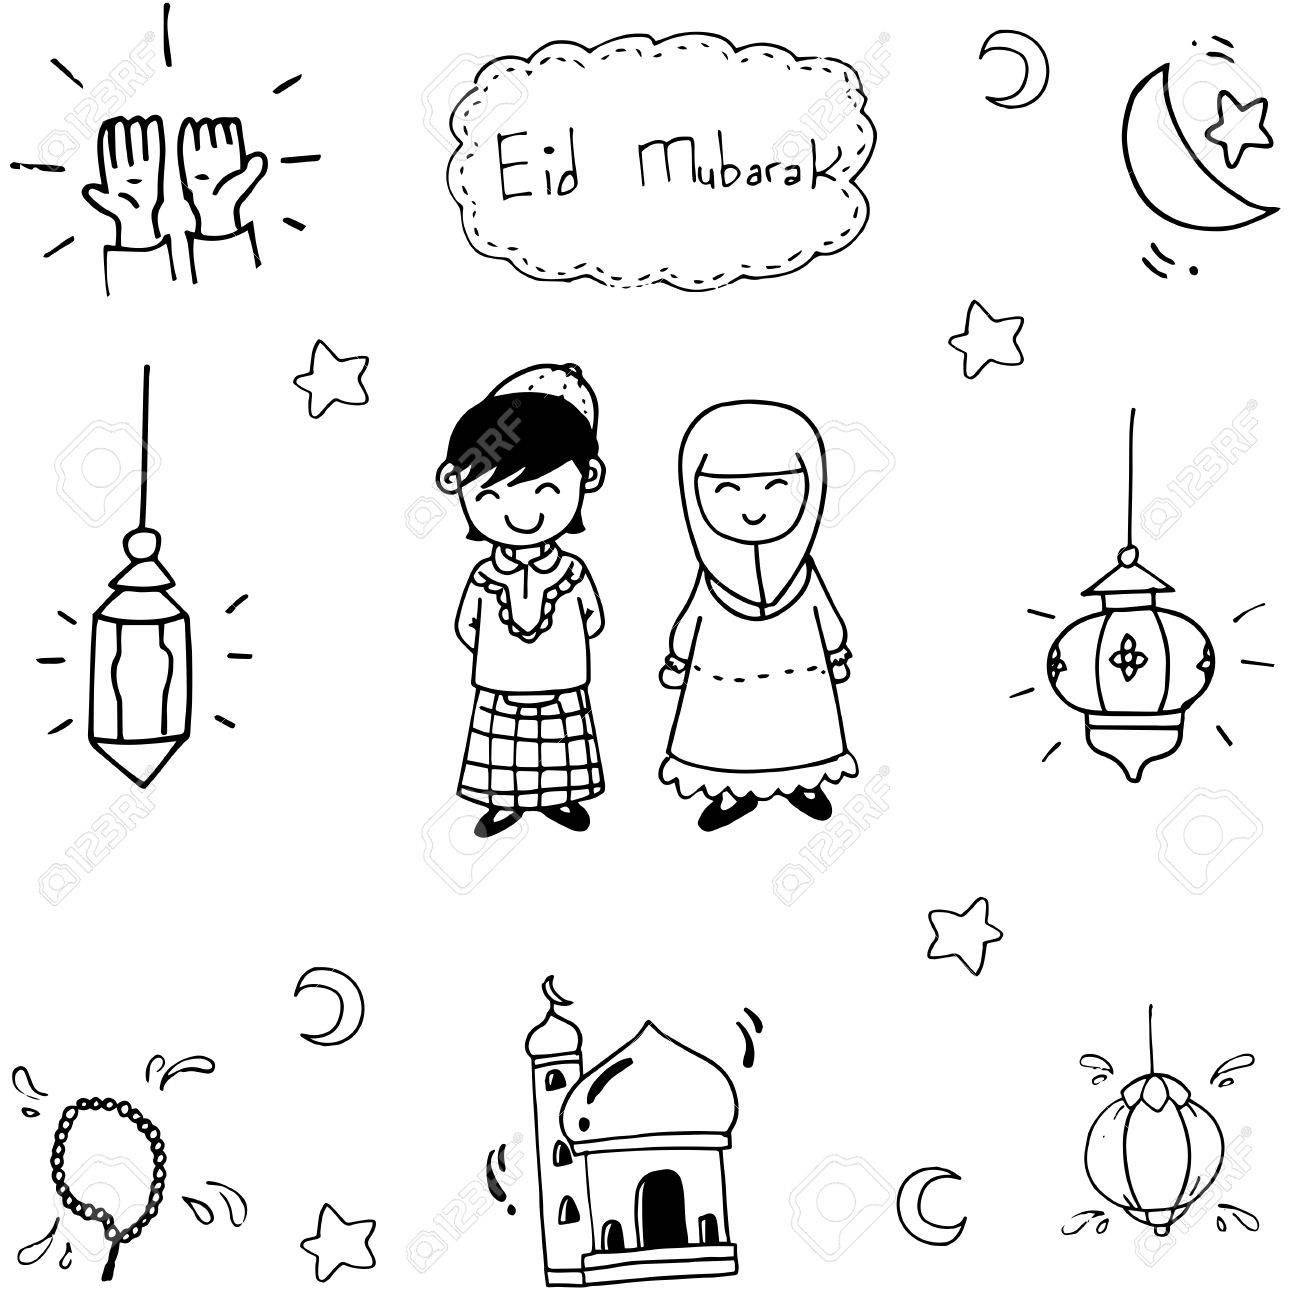 Doodle vector art muslim eid mubarak on white backgrounds.